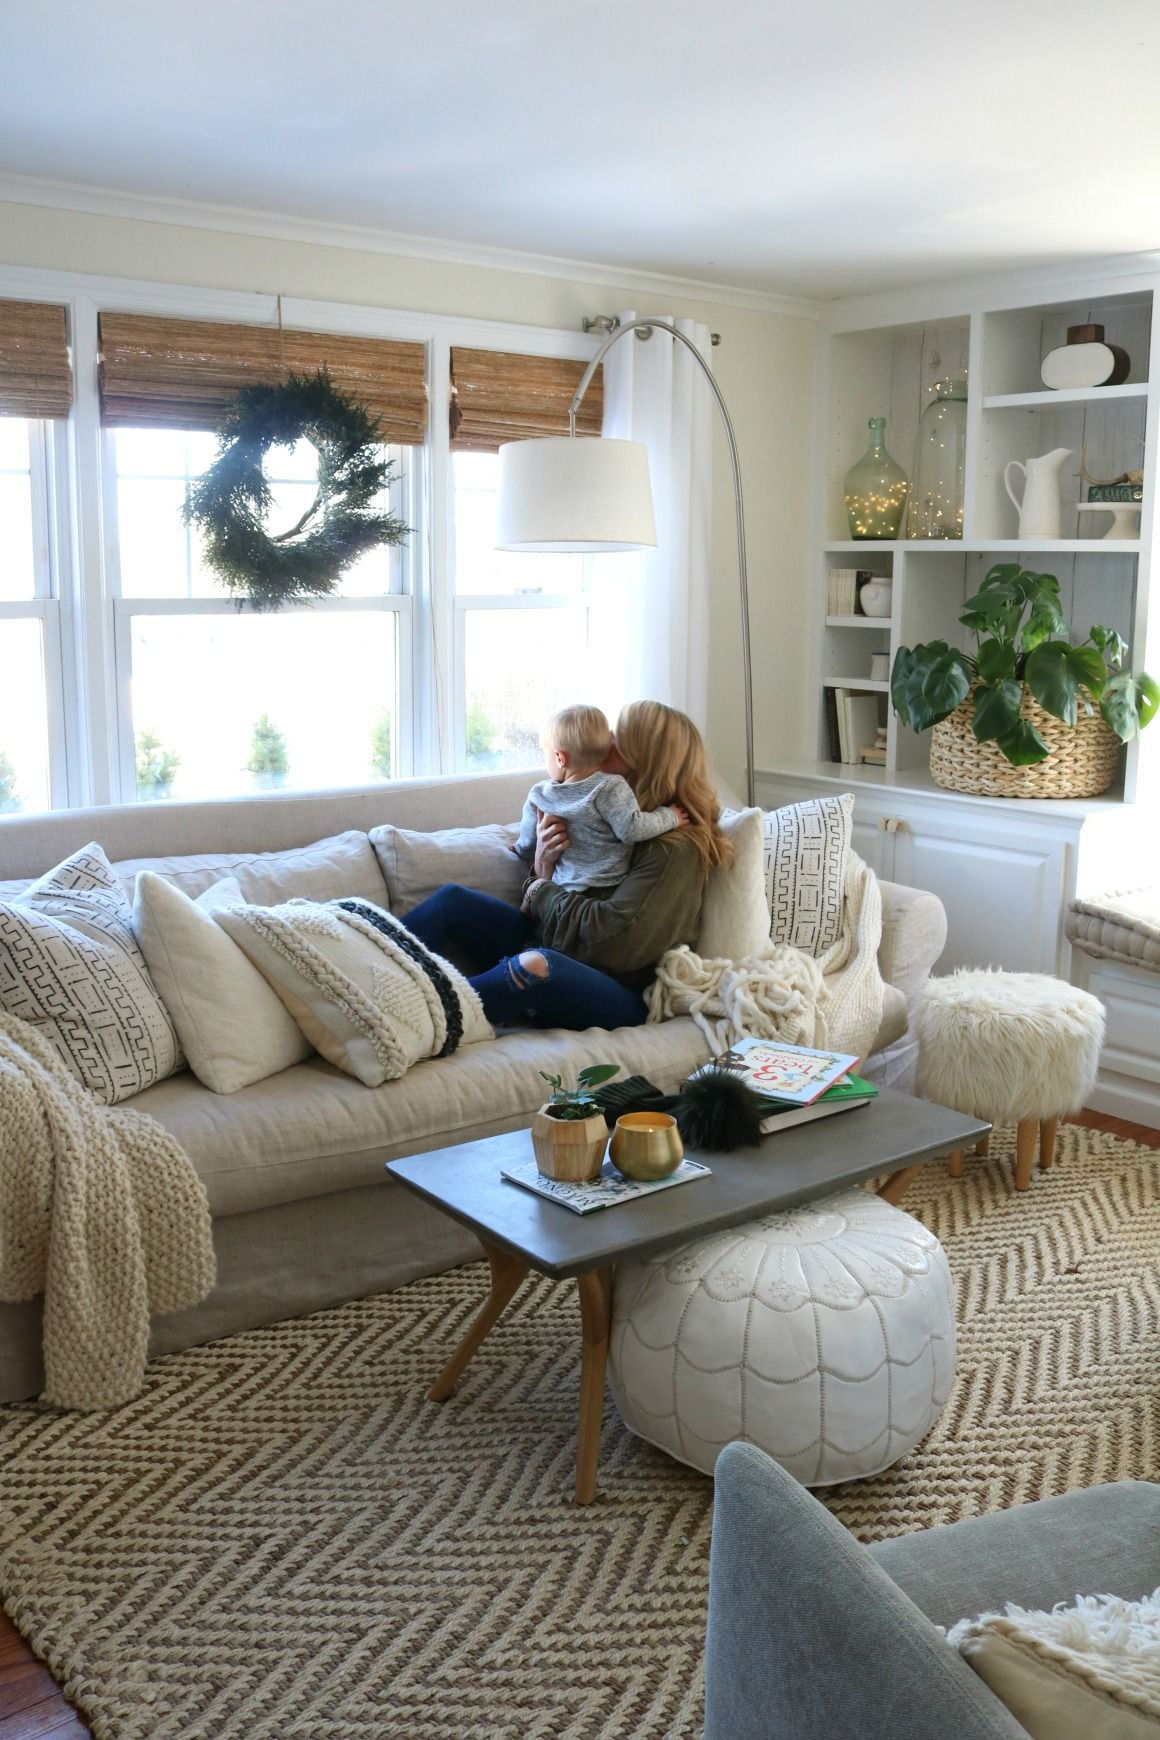 Top 5 Most Bang For Your Buck Ideas To Do In Your Home